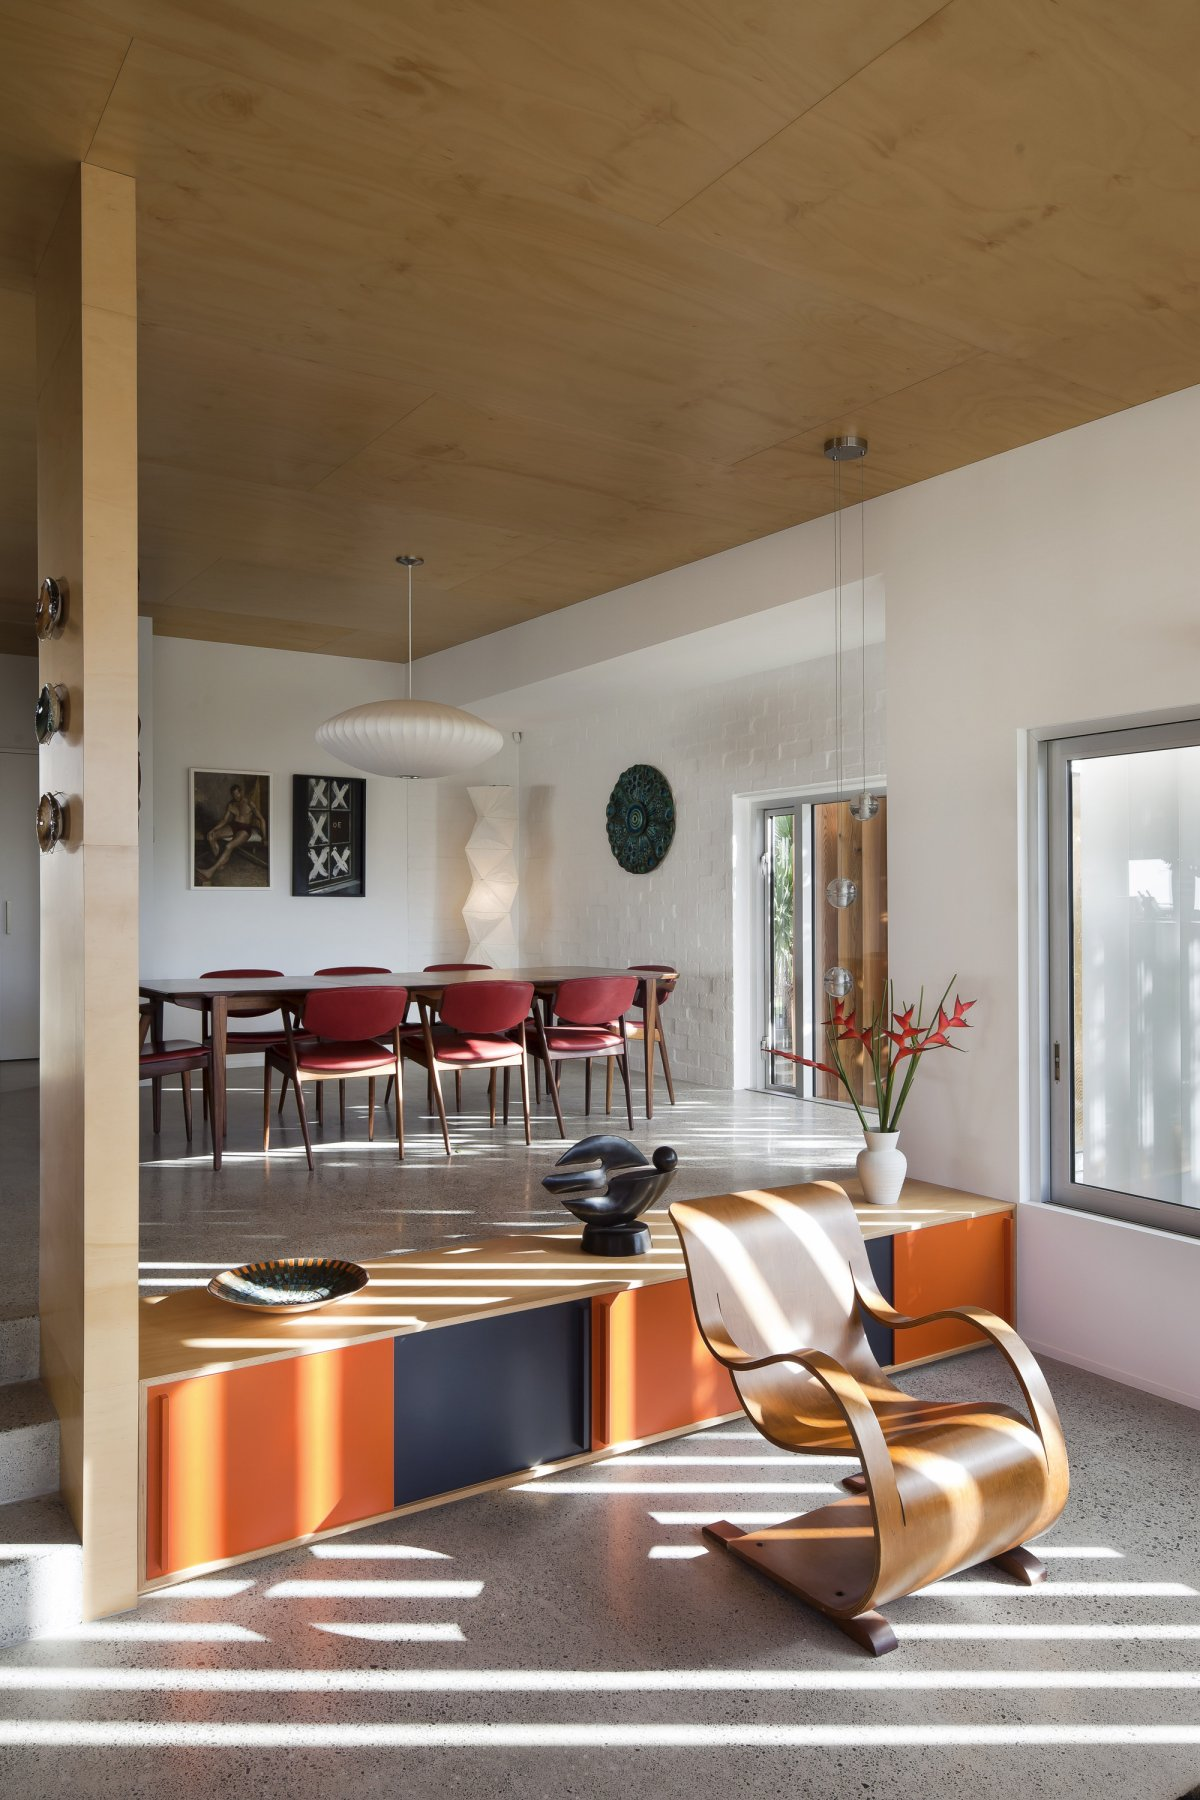 Dining Table, 1950-60s Inspired Home in Auckland, New Zealand